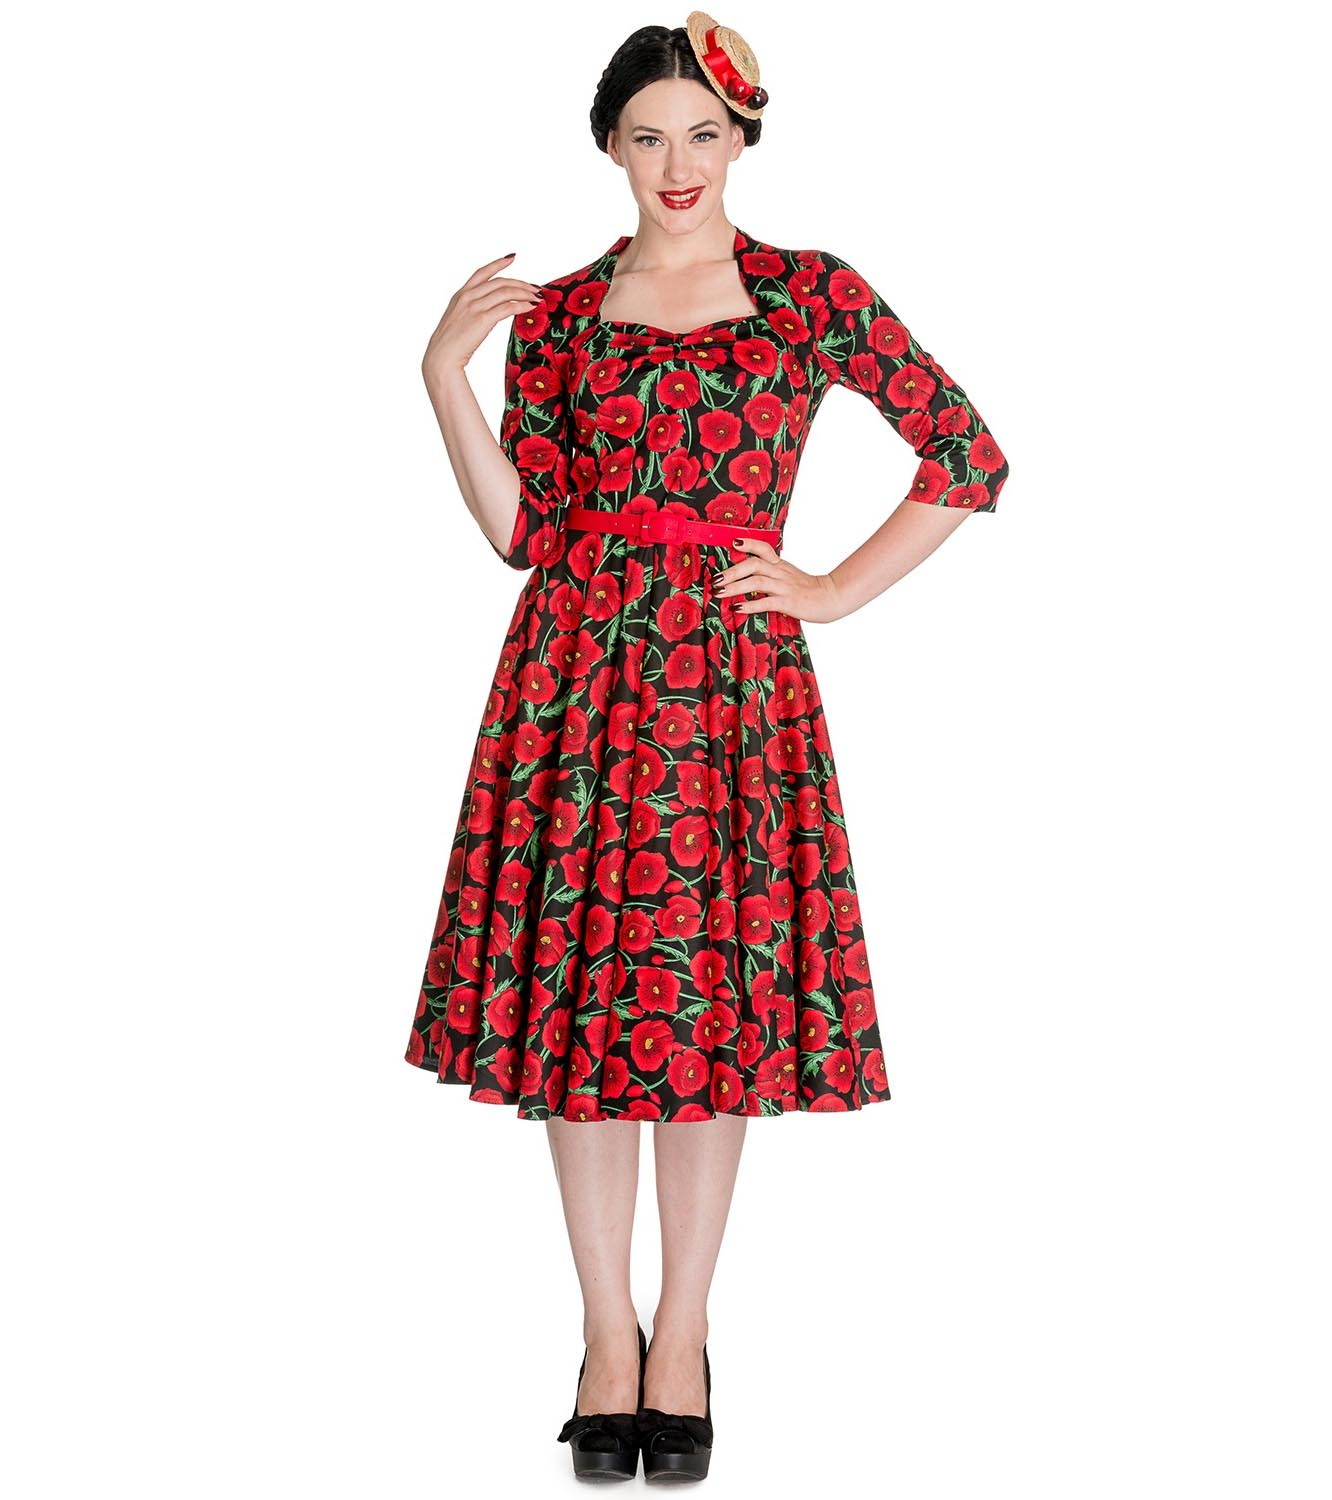 Hell-Bunny-50s-Dress-Pin-Up-POPPY-Red-Black-Flowers-3-4-Sleeve-All-Sizes thumbnail 3